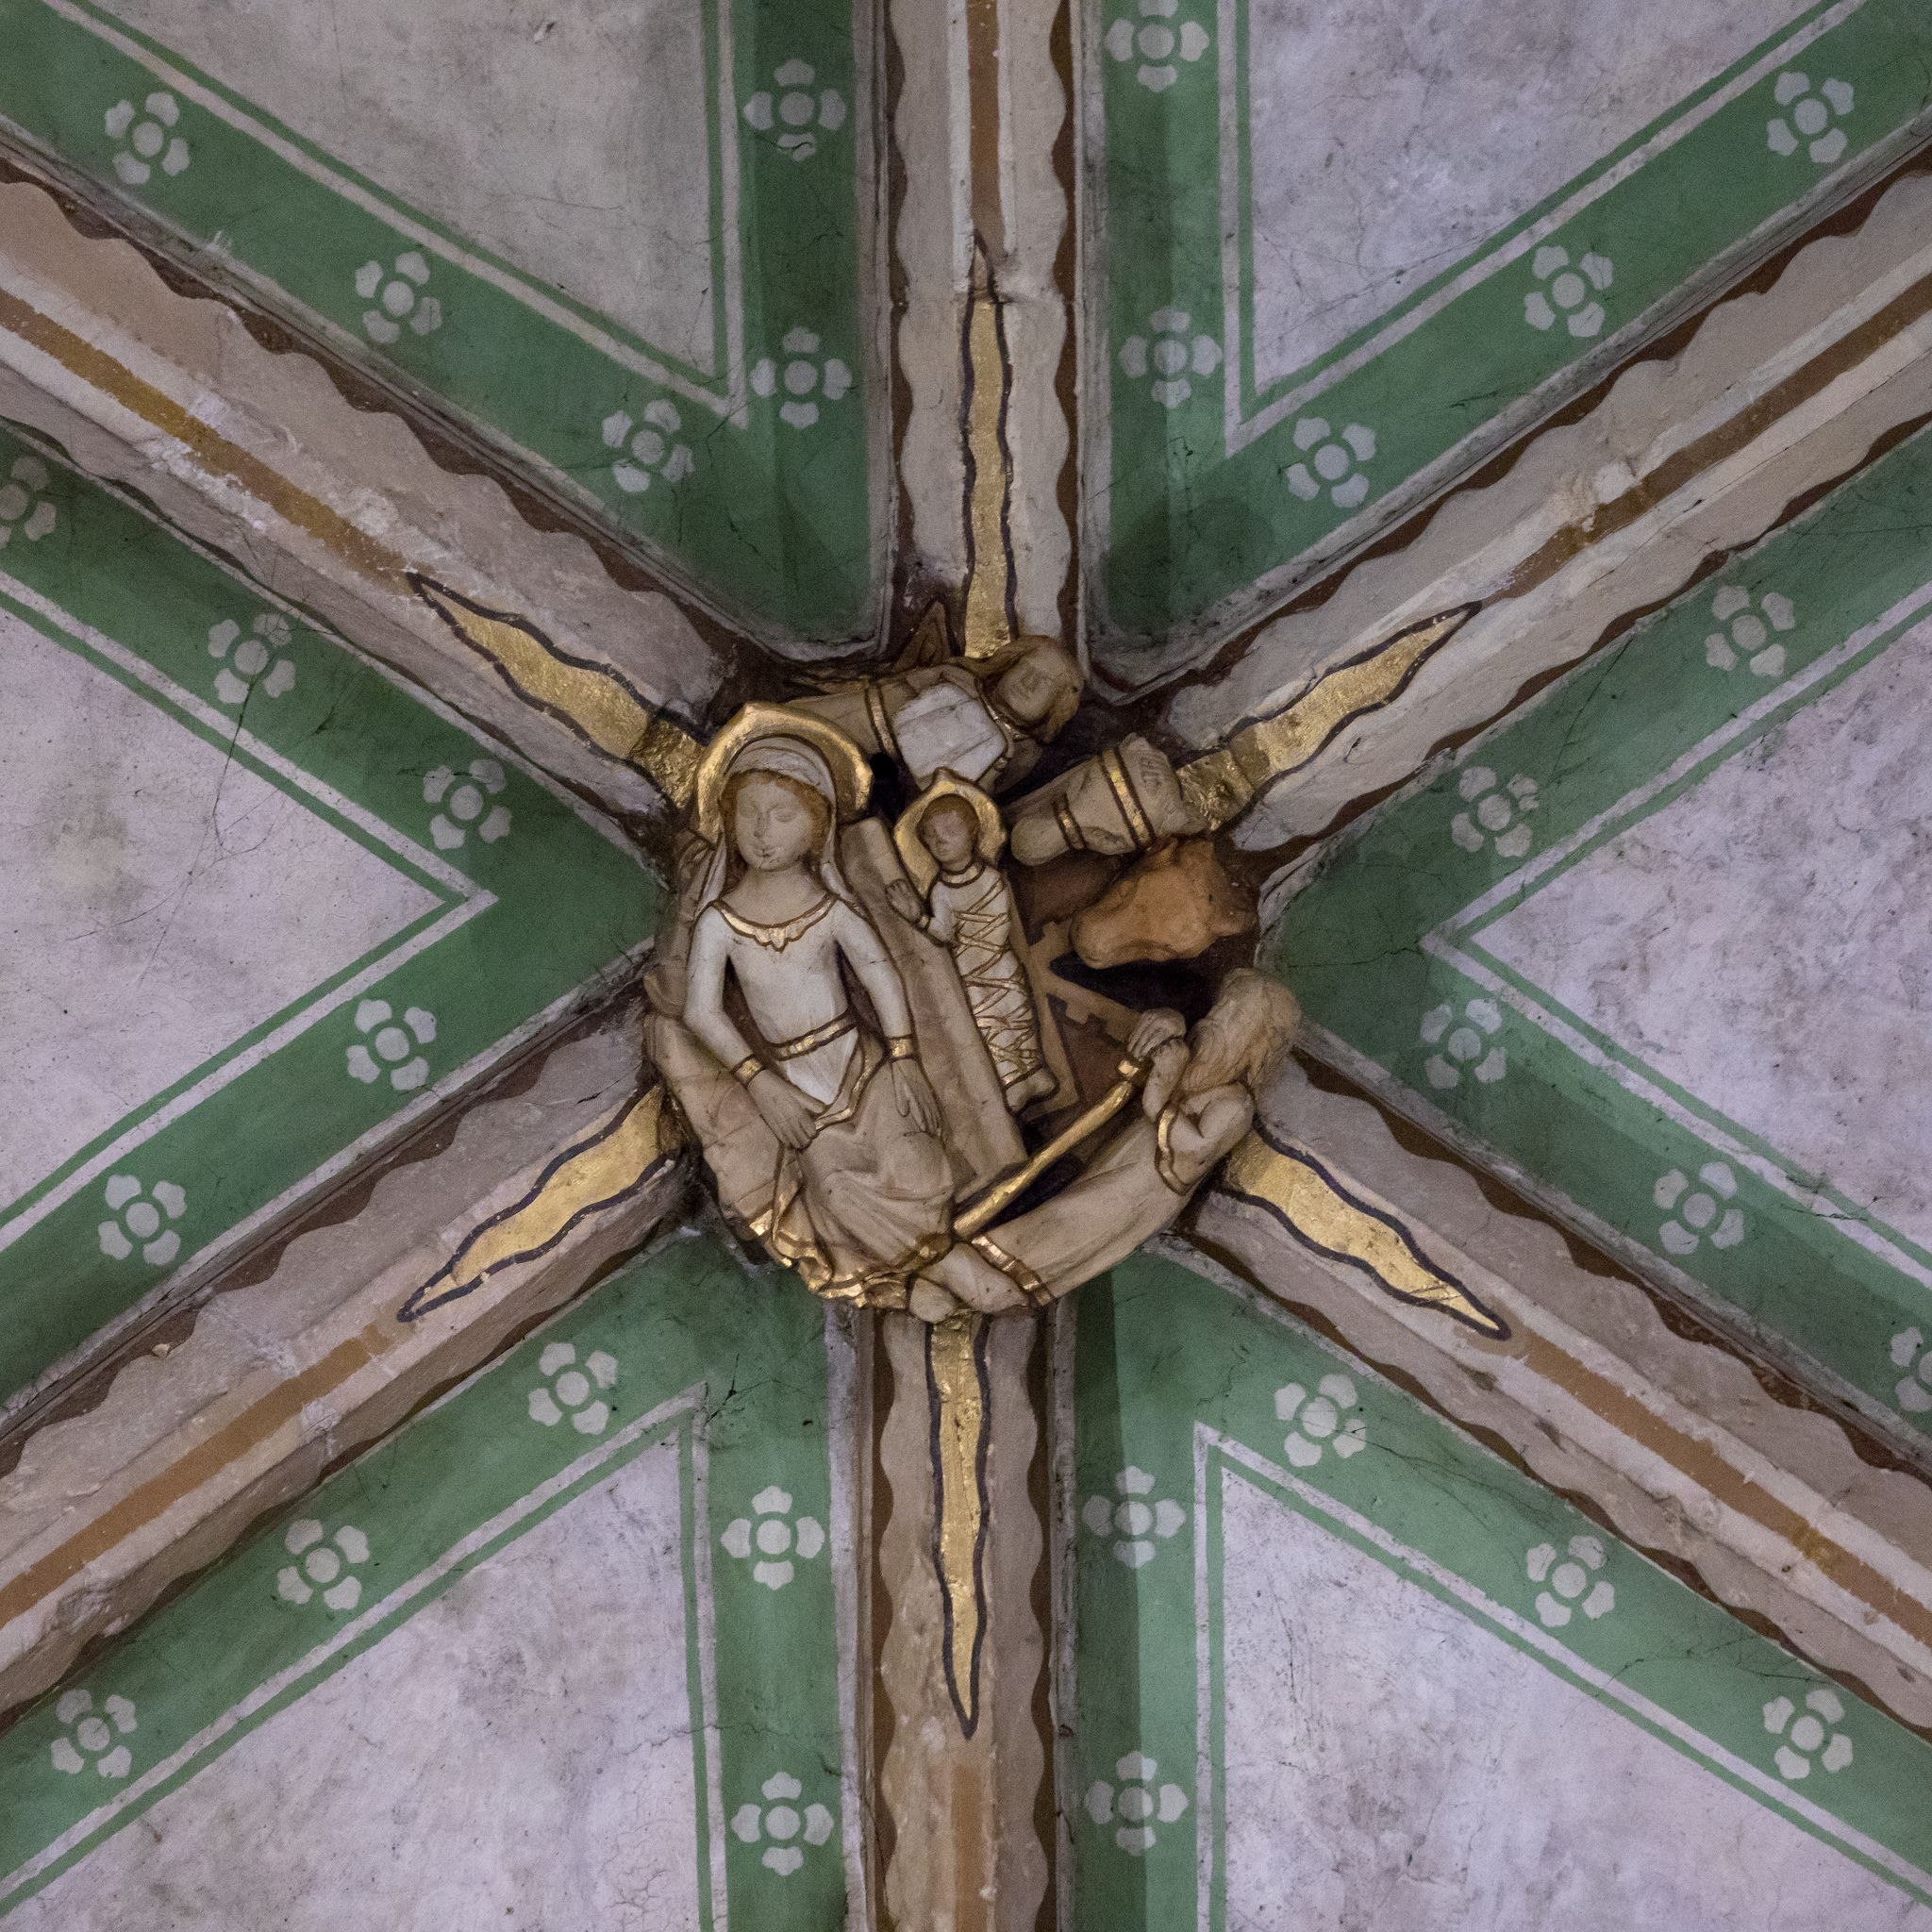 The Nativity Roof Boss Tewkesbury Abbey Abbey Church Of St Mary The Virgin 19 St Mary Norman Architecture Tewkesbury